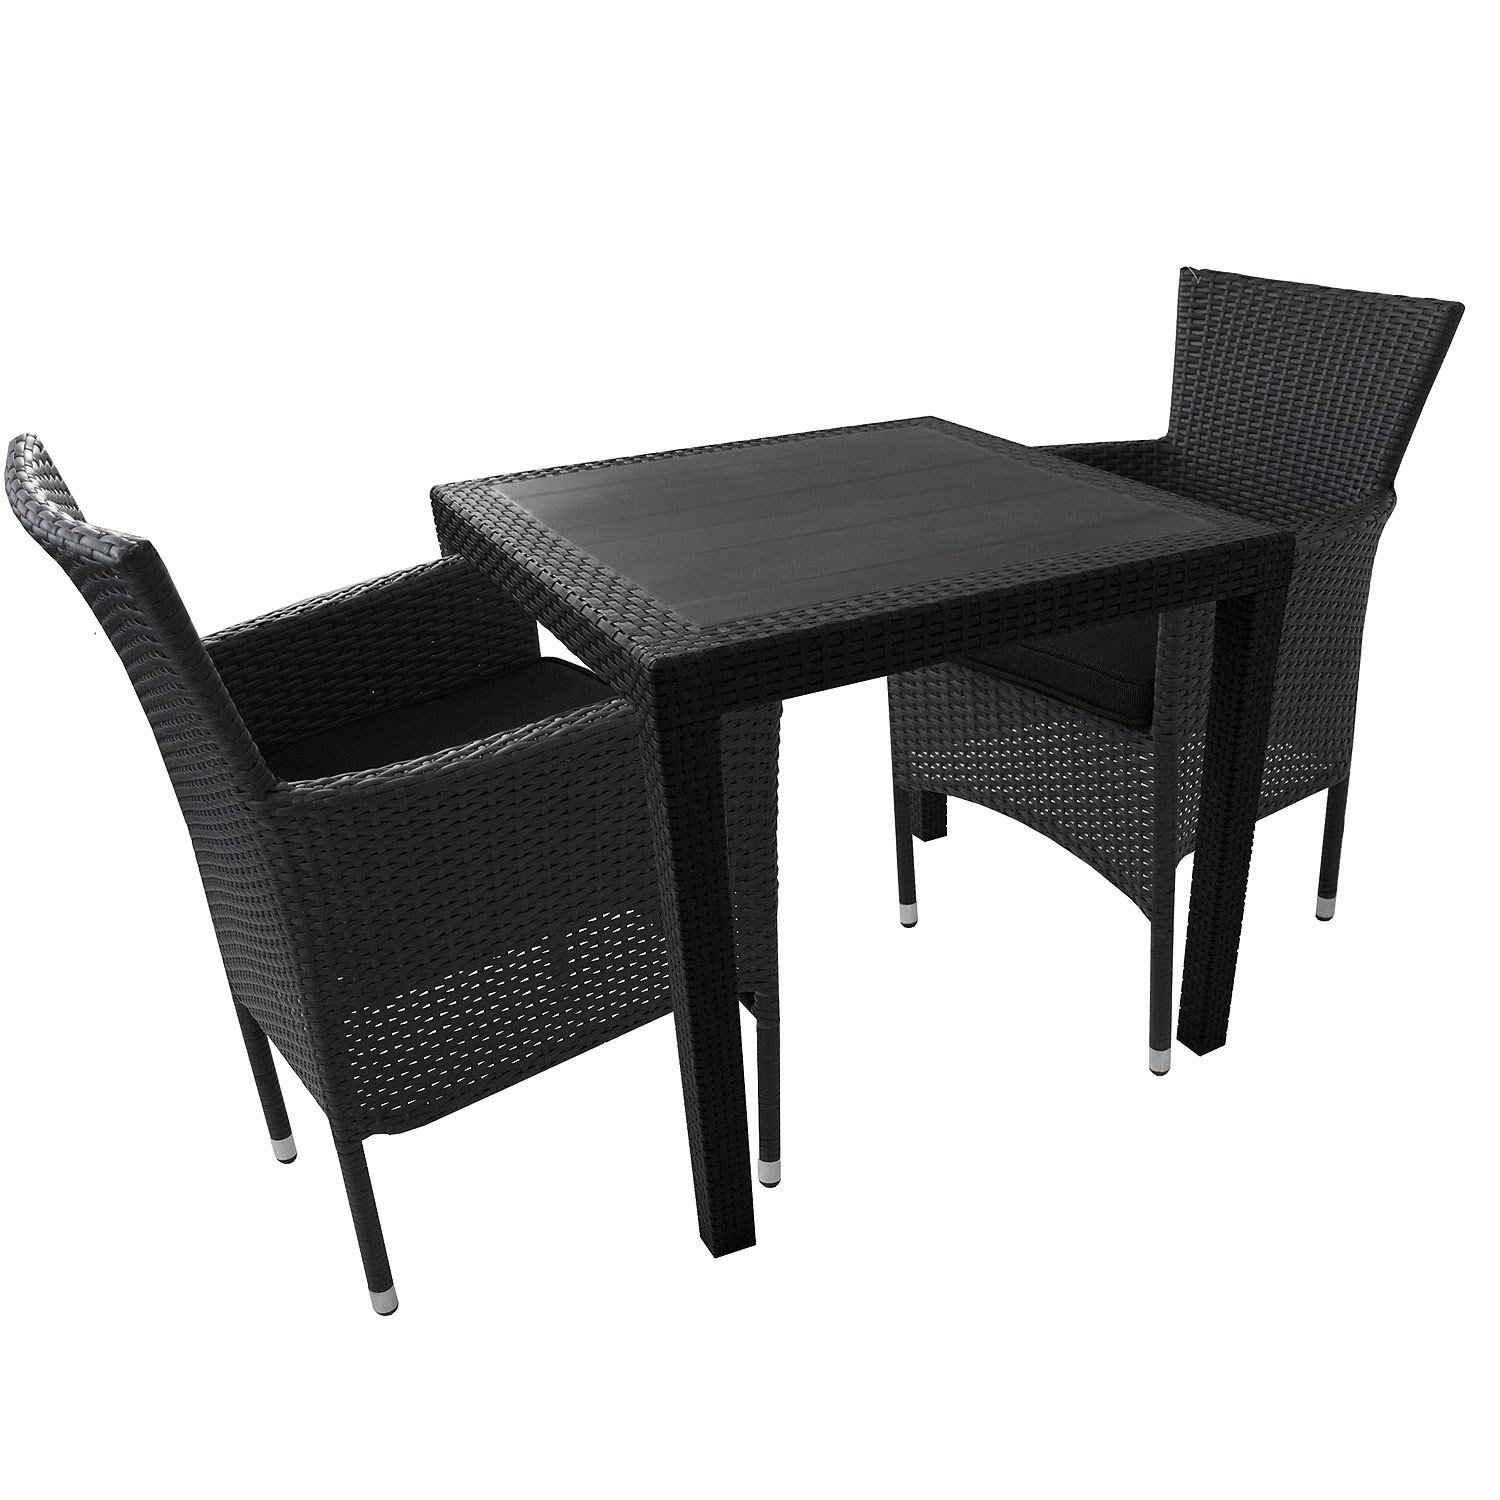 gartenm bel g nstig online bestellen. Black Bedroom Furniture Sets. Home Design Ideas